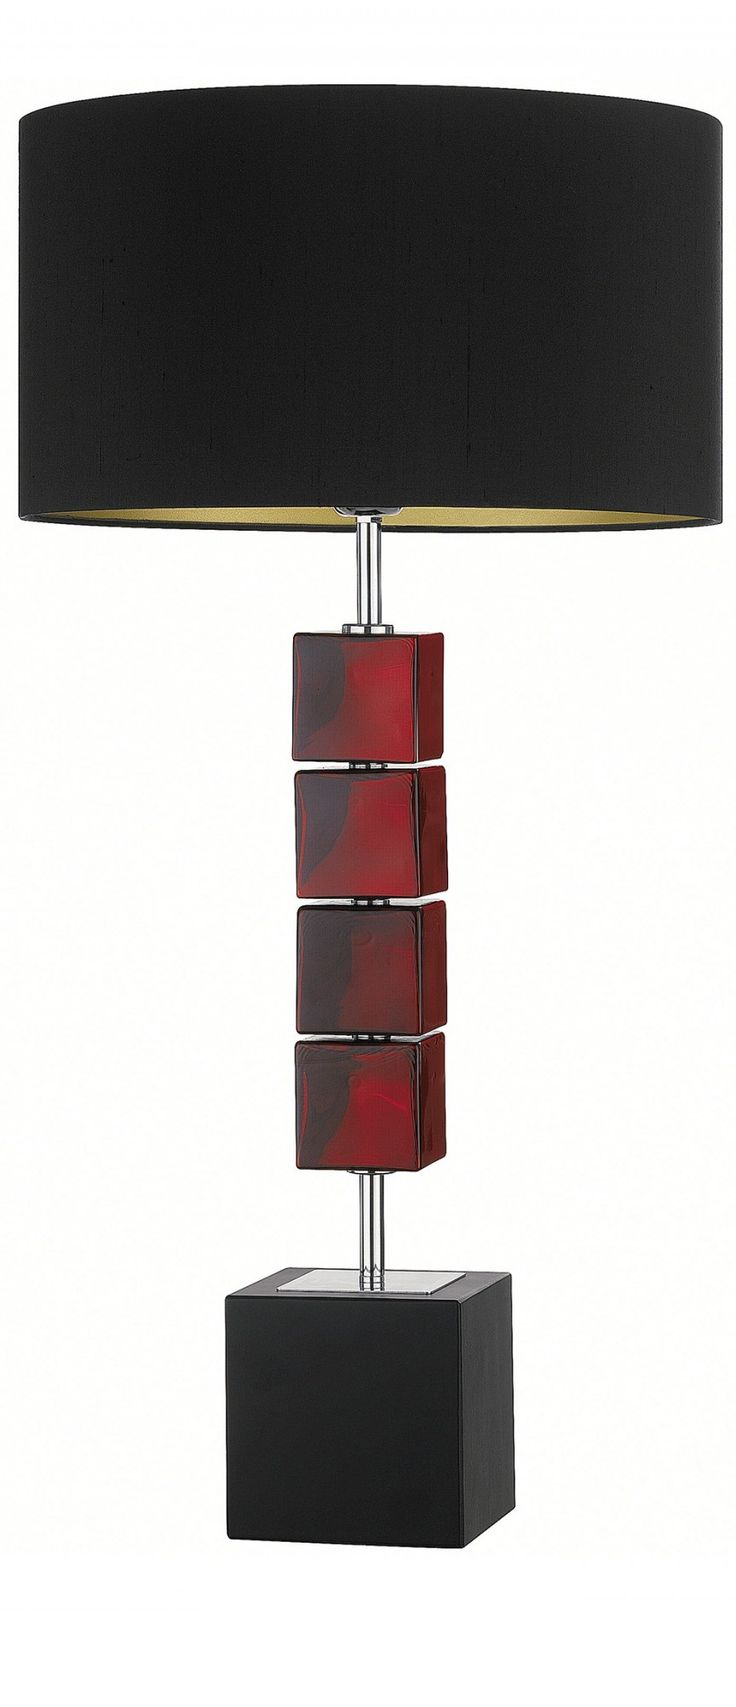 562 best Table Lamps images on Pinterest | Contemporary table ...